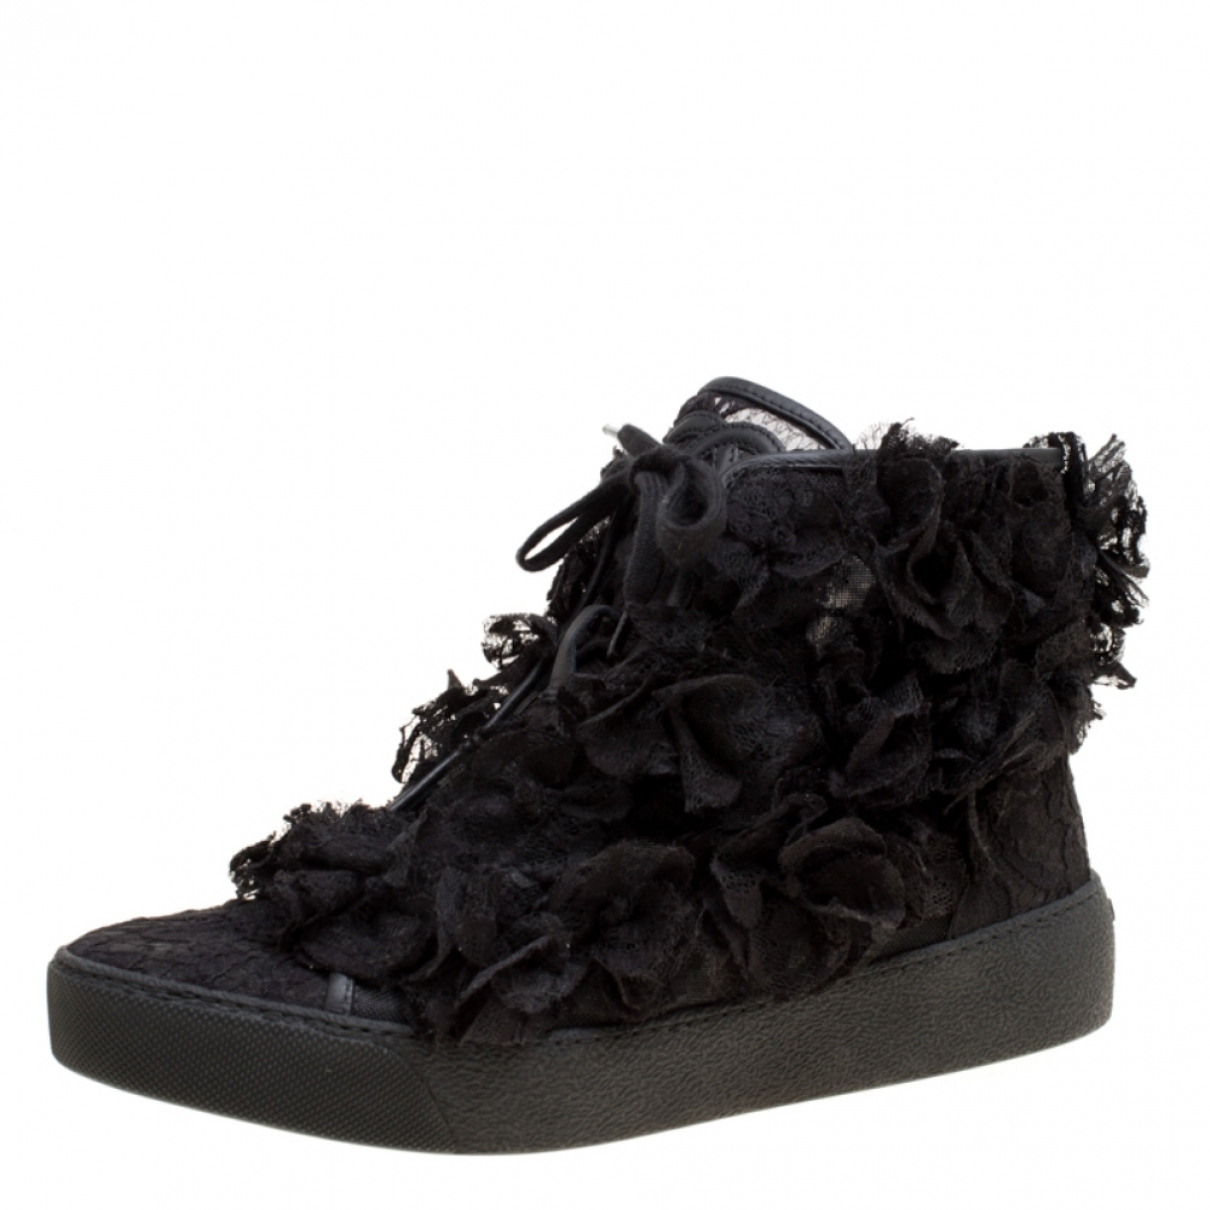 Chanel \N Black Leather Trainers for Women 6.5 US